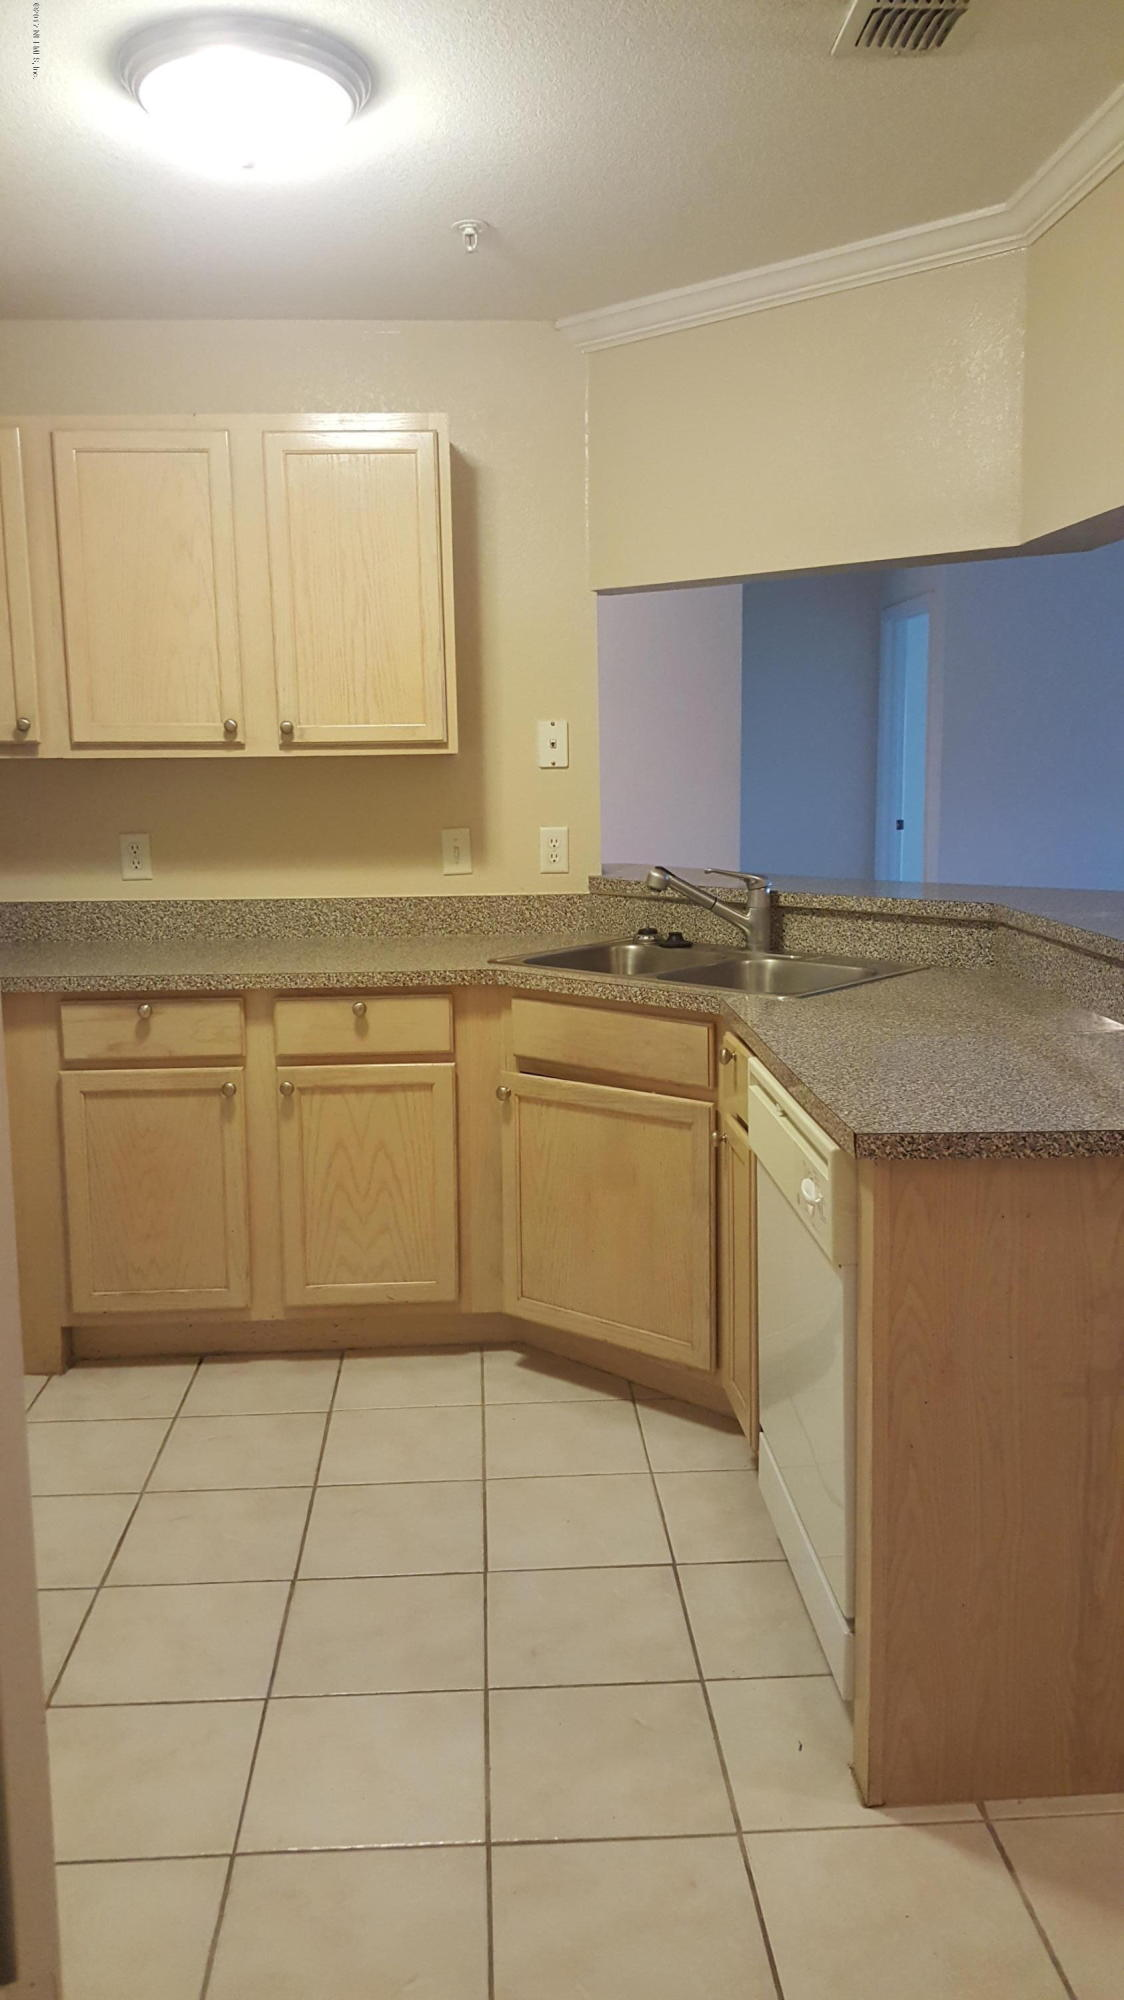 7800 POINT MEADOWS, JACKSONVILLE, FLORIDA 32256, 2 Bedrooms Bedrooms, ,2 BathroomsBathrooms,Condo,For sale,POINT MEADOWS,874453